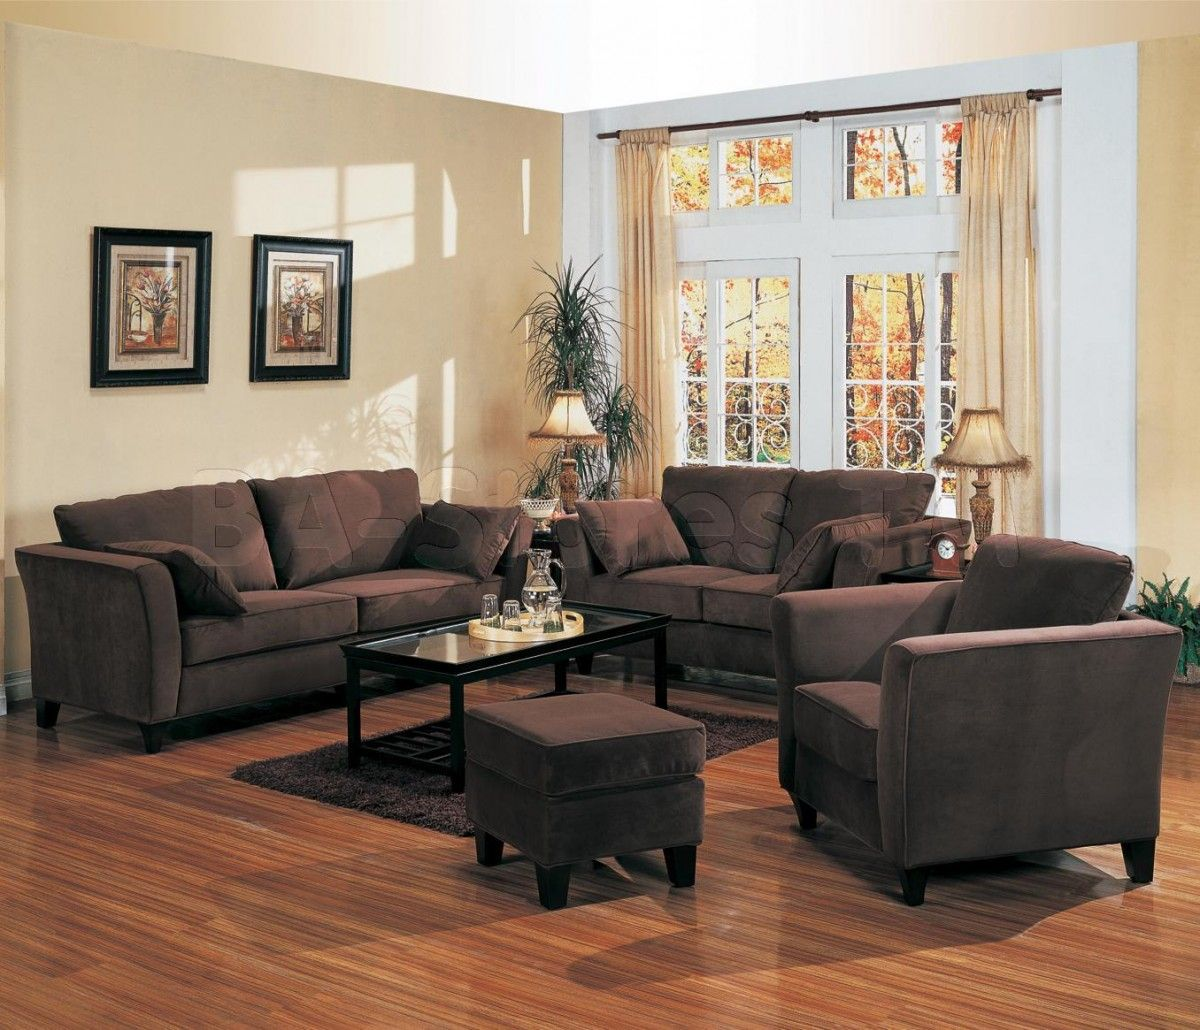 Wall Colour With Brown Furniture